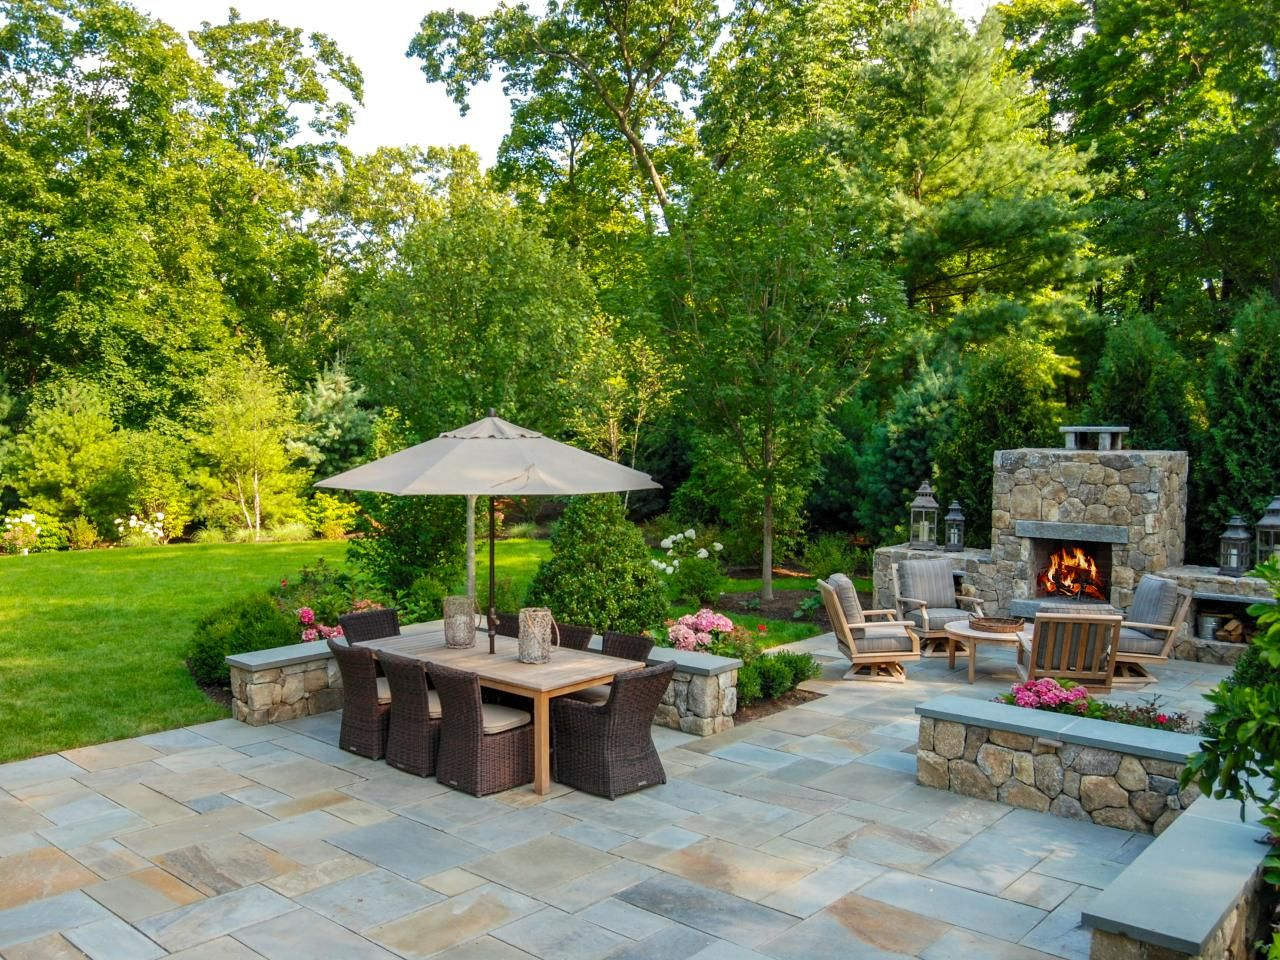 30 Wow Worthy Hardscaping Ideas Houses M I T H R E C T O R for 14 Genius Concepts of How to Upgrade Hardscaping Ideas For Backyards